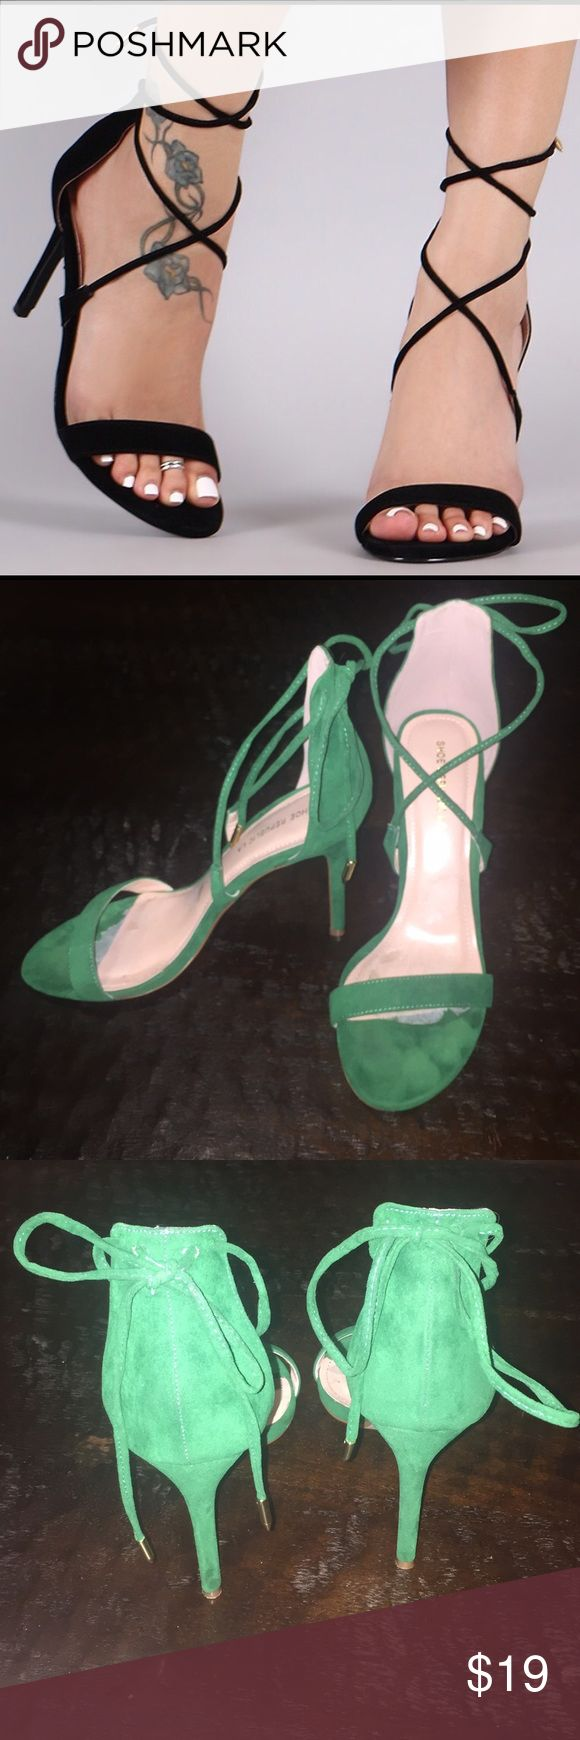 Green 💚 vegan suede strap up heels These green vegan suede heels are perfect for a pop of classy color! Worn once, has sticky paper inside from heel cushion insoles. Price reflects wear . Great find! Shoes Heels